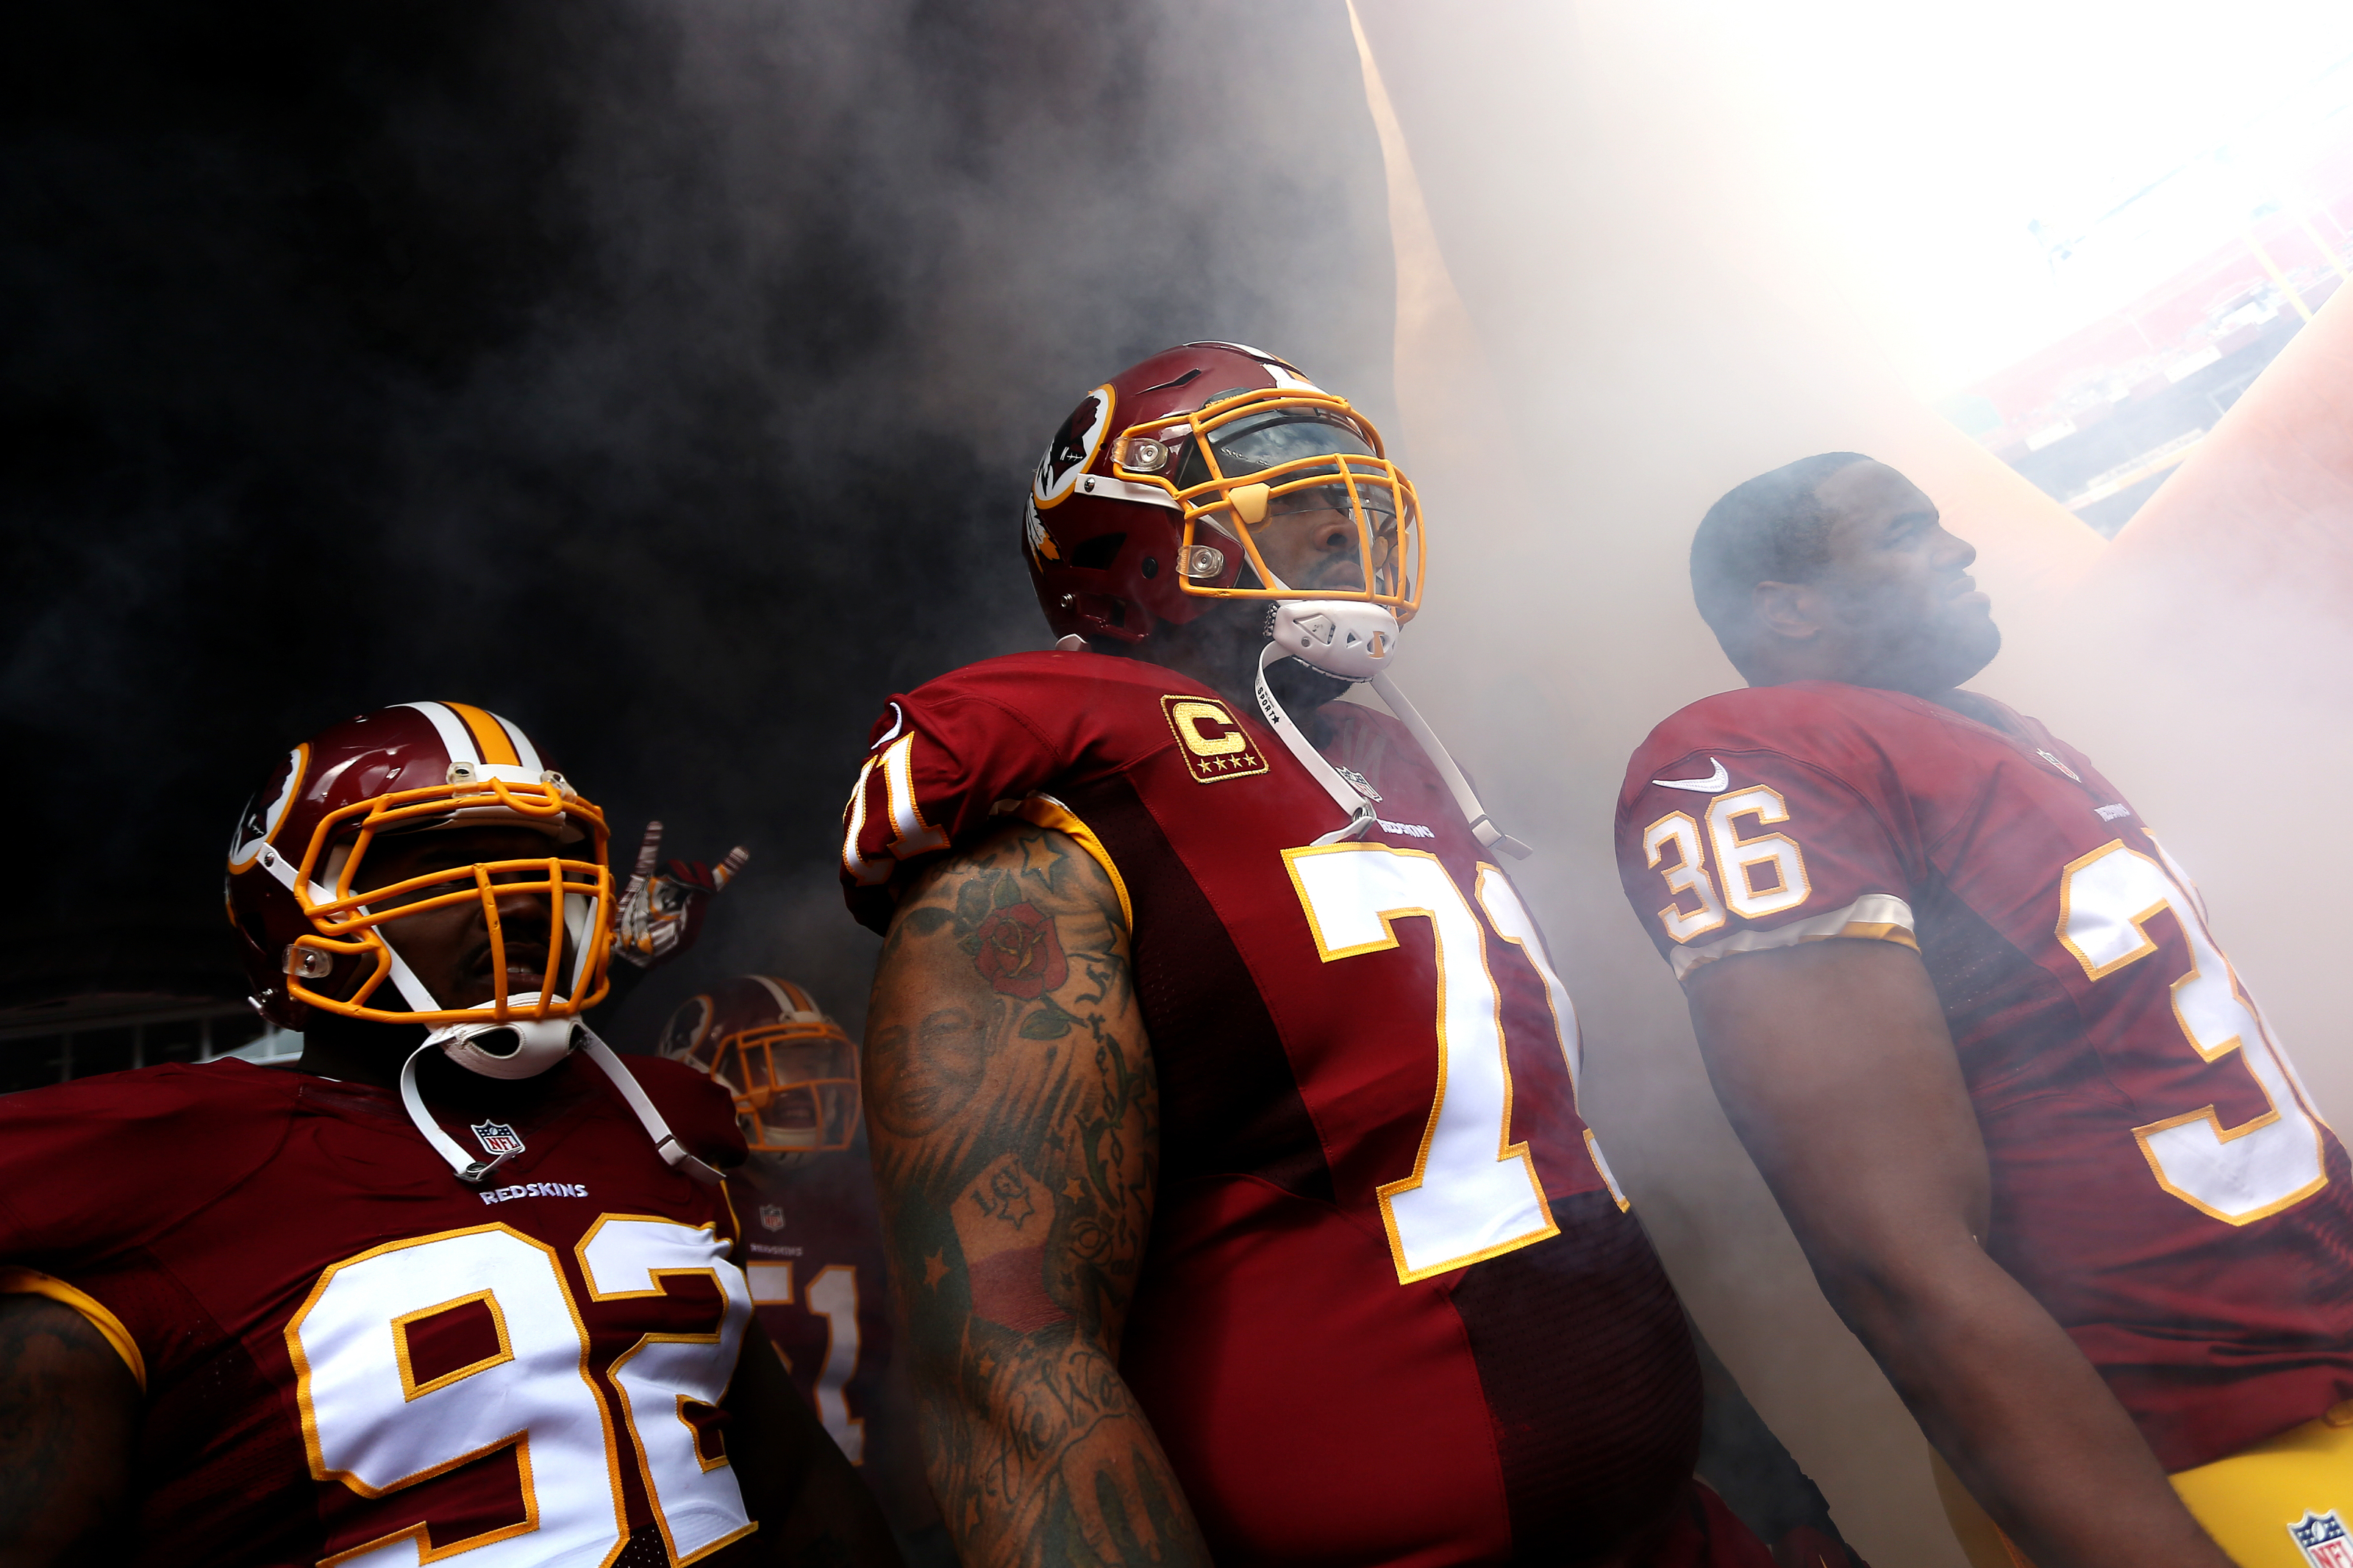 Trent Williams reportedly to return to the Redskins after team cleans house